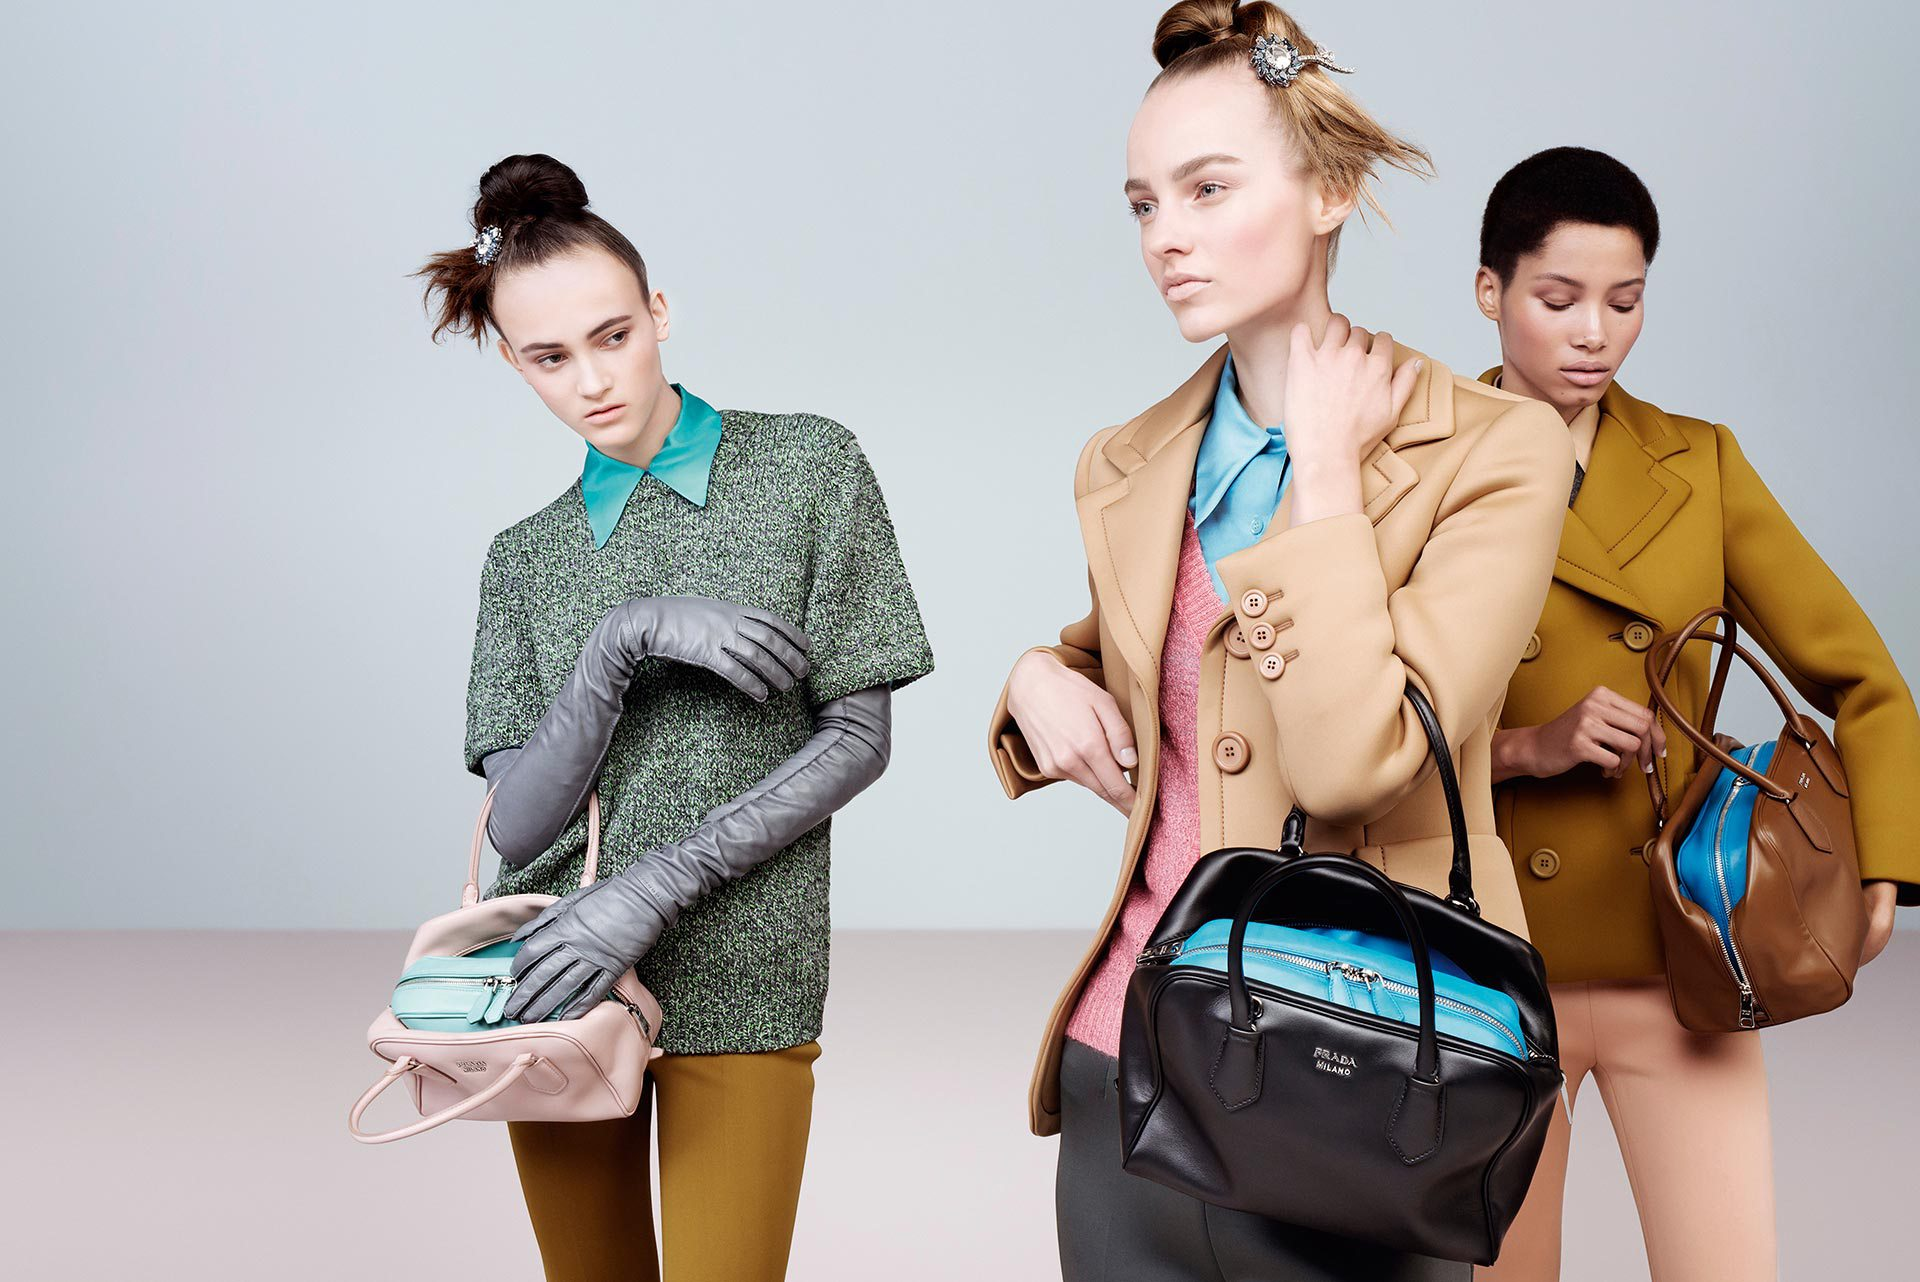 lineisy-montero-stars-in-prada-fall-winter-2015-ad-campaign5